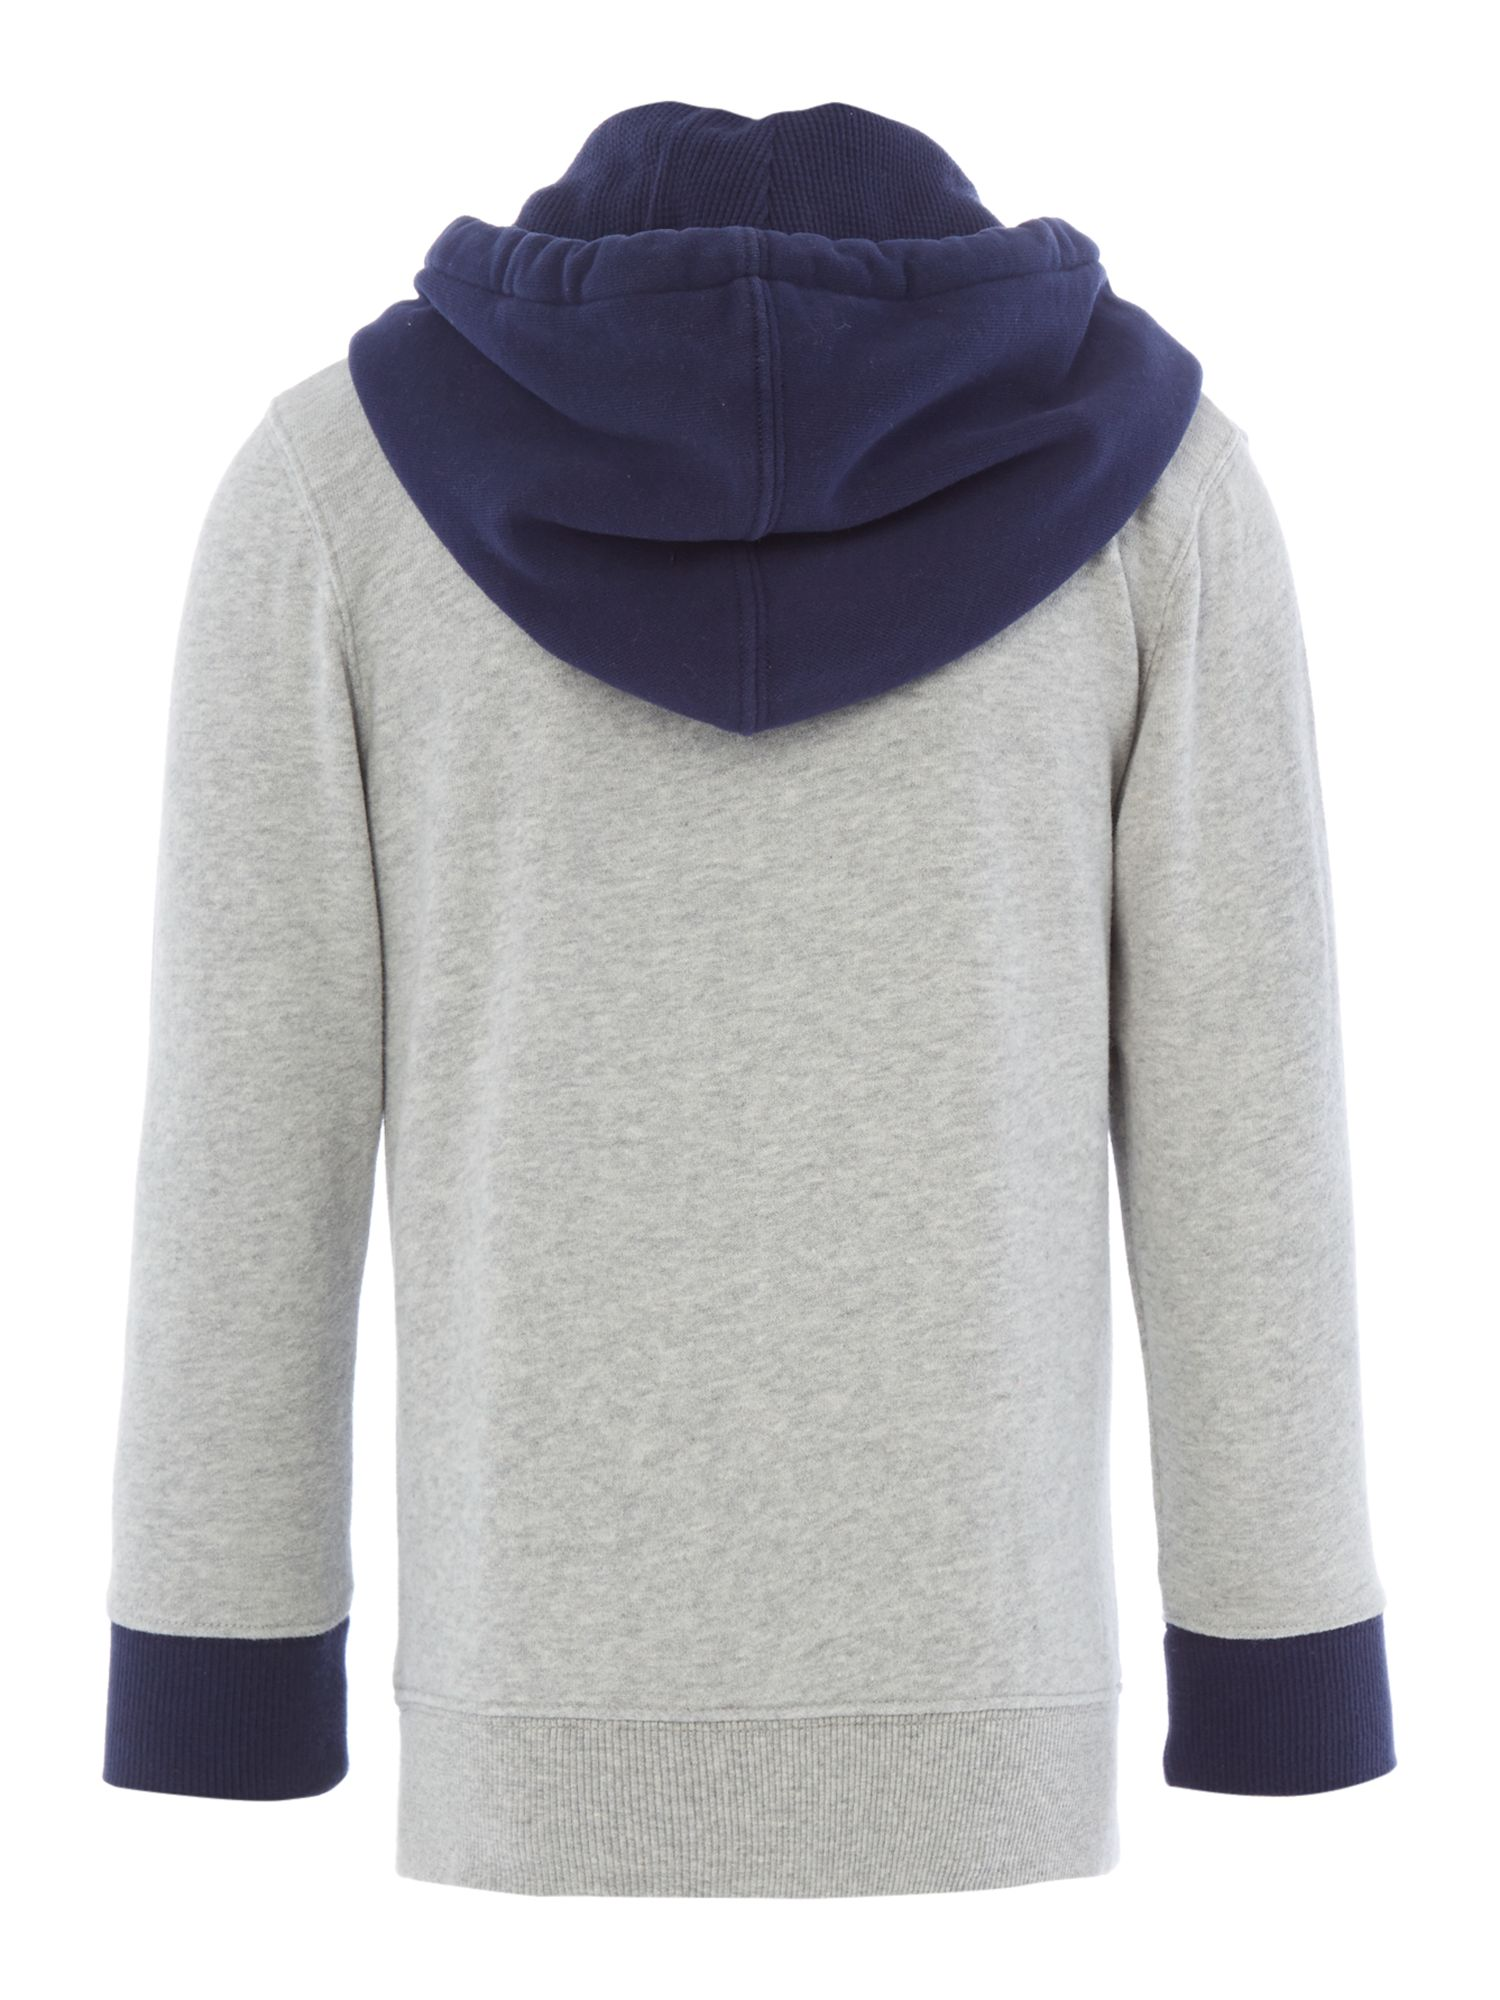 Boy`s two colour hooded top